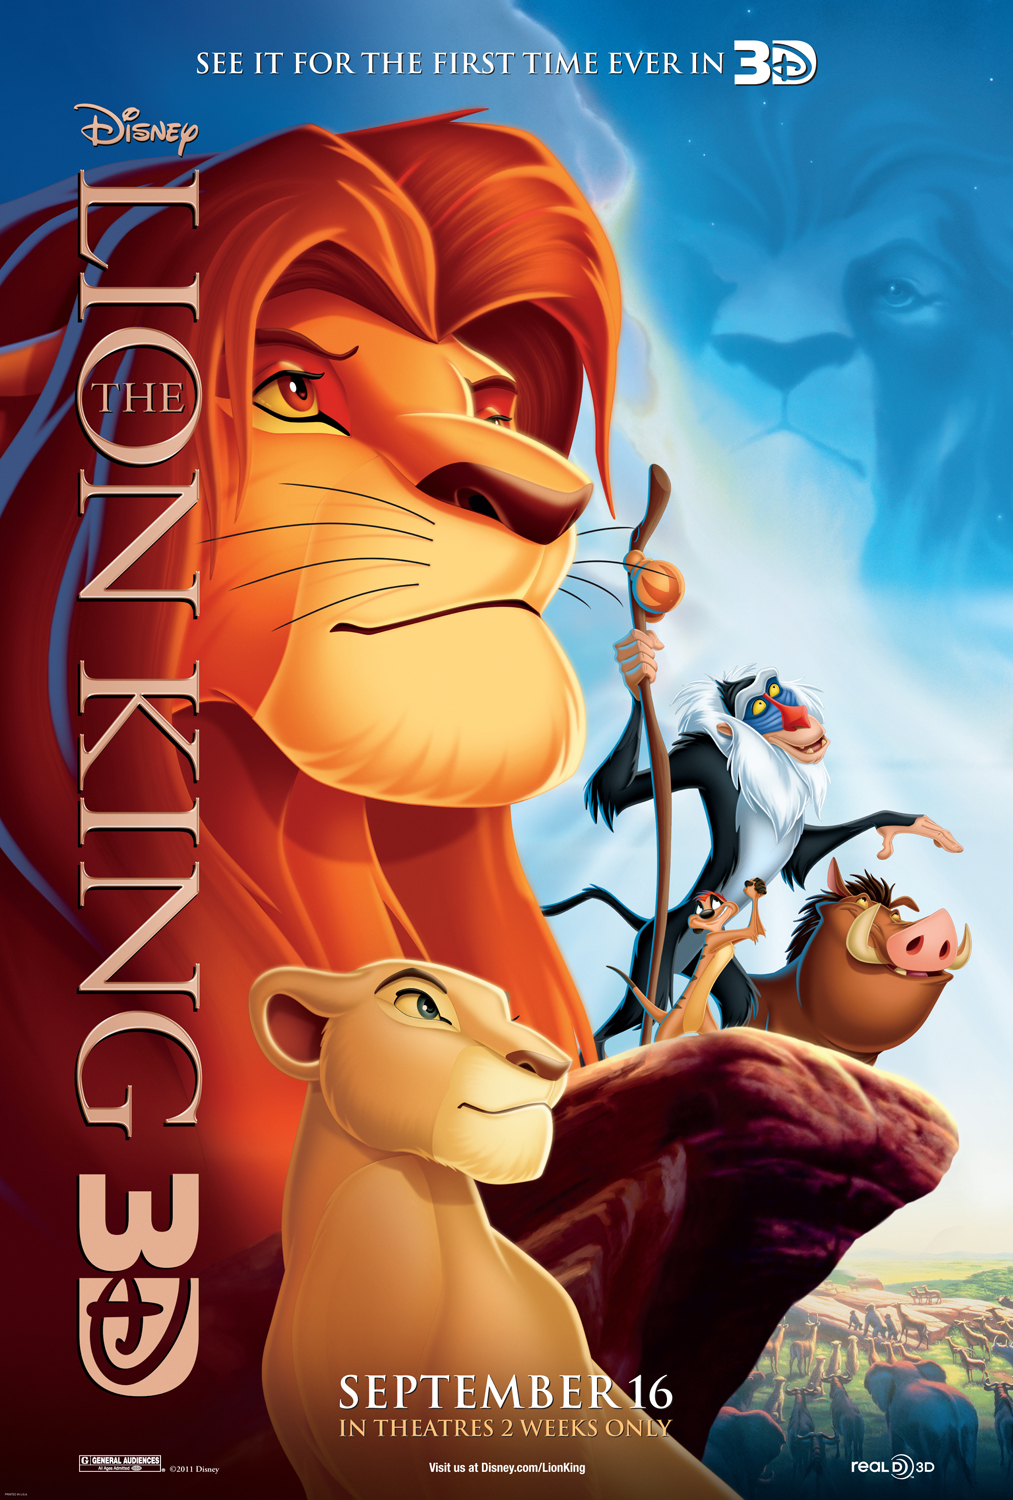 the-lion-king-theatrical-poster-3d.jpg